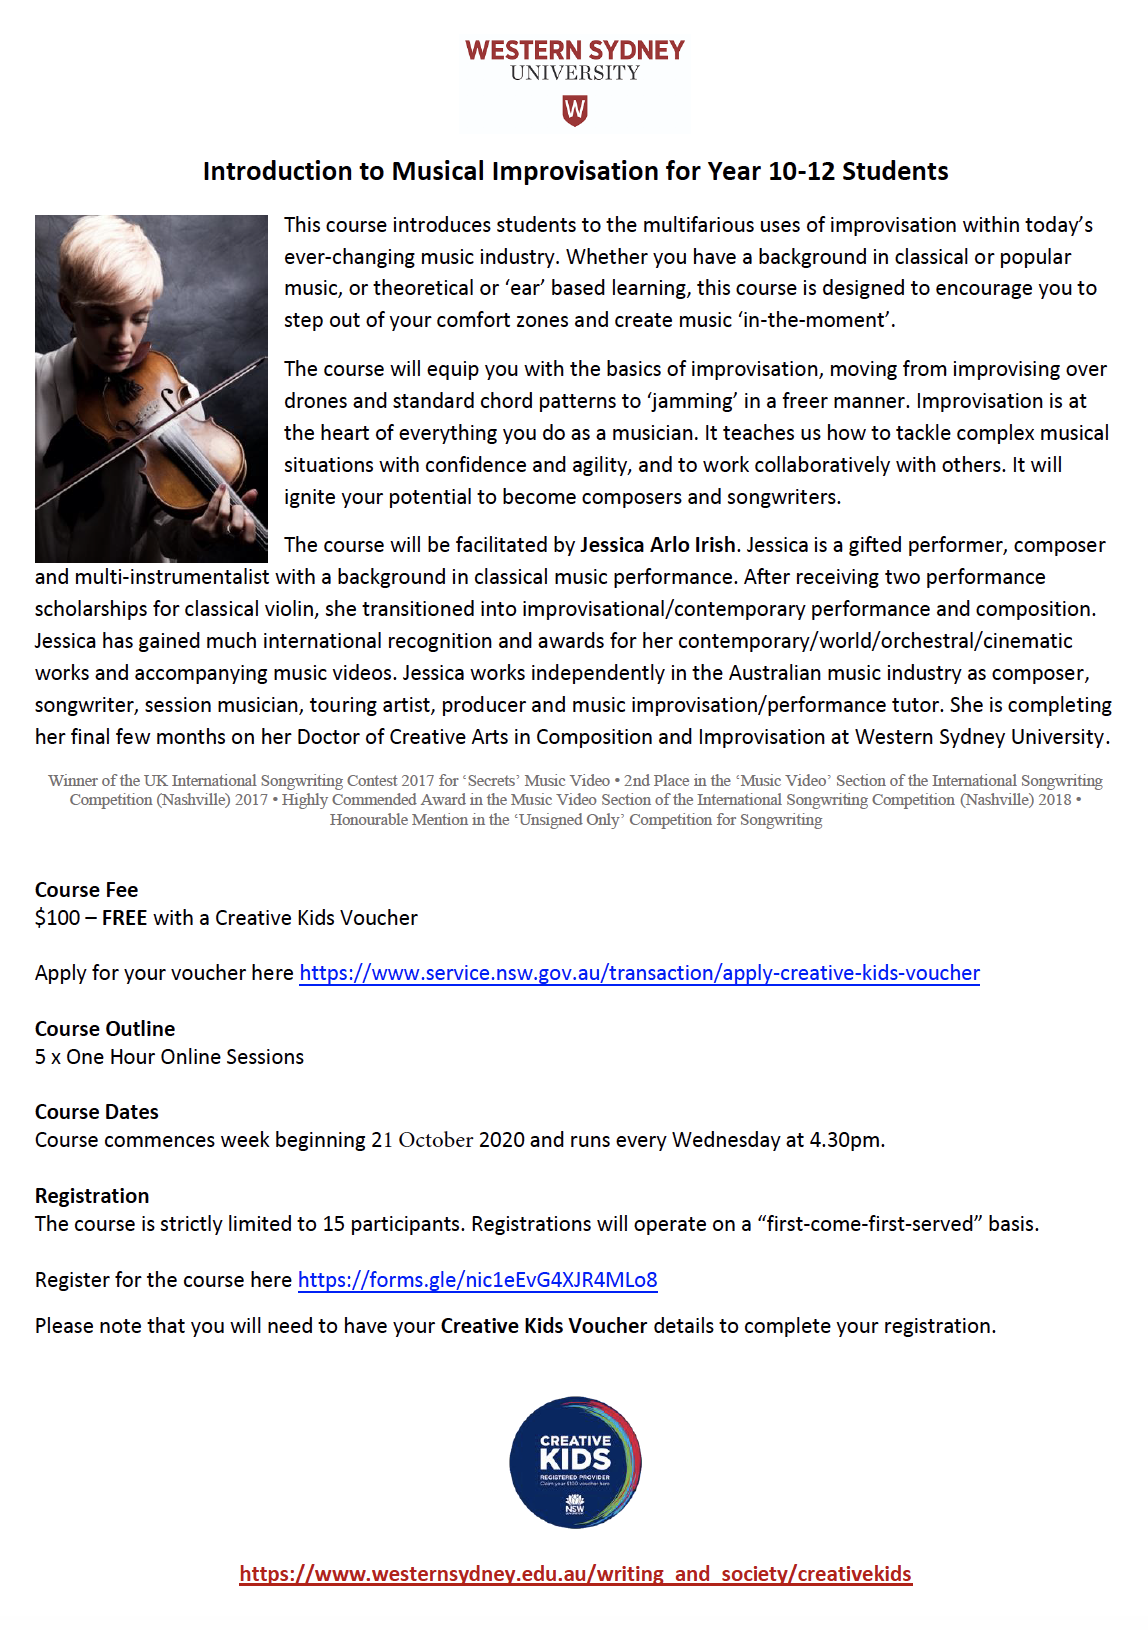 Introduction to Musical Improvisation for Year 10-12 Students